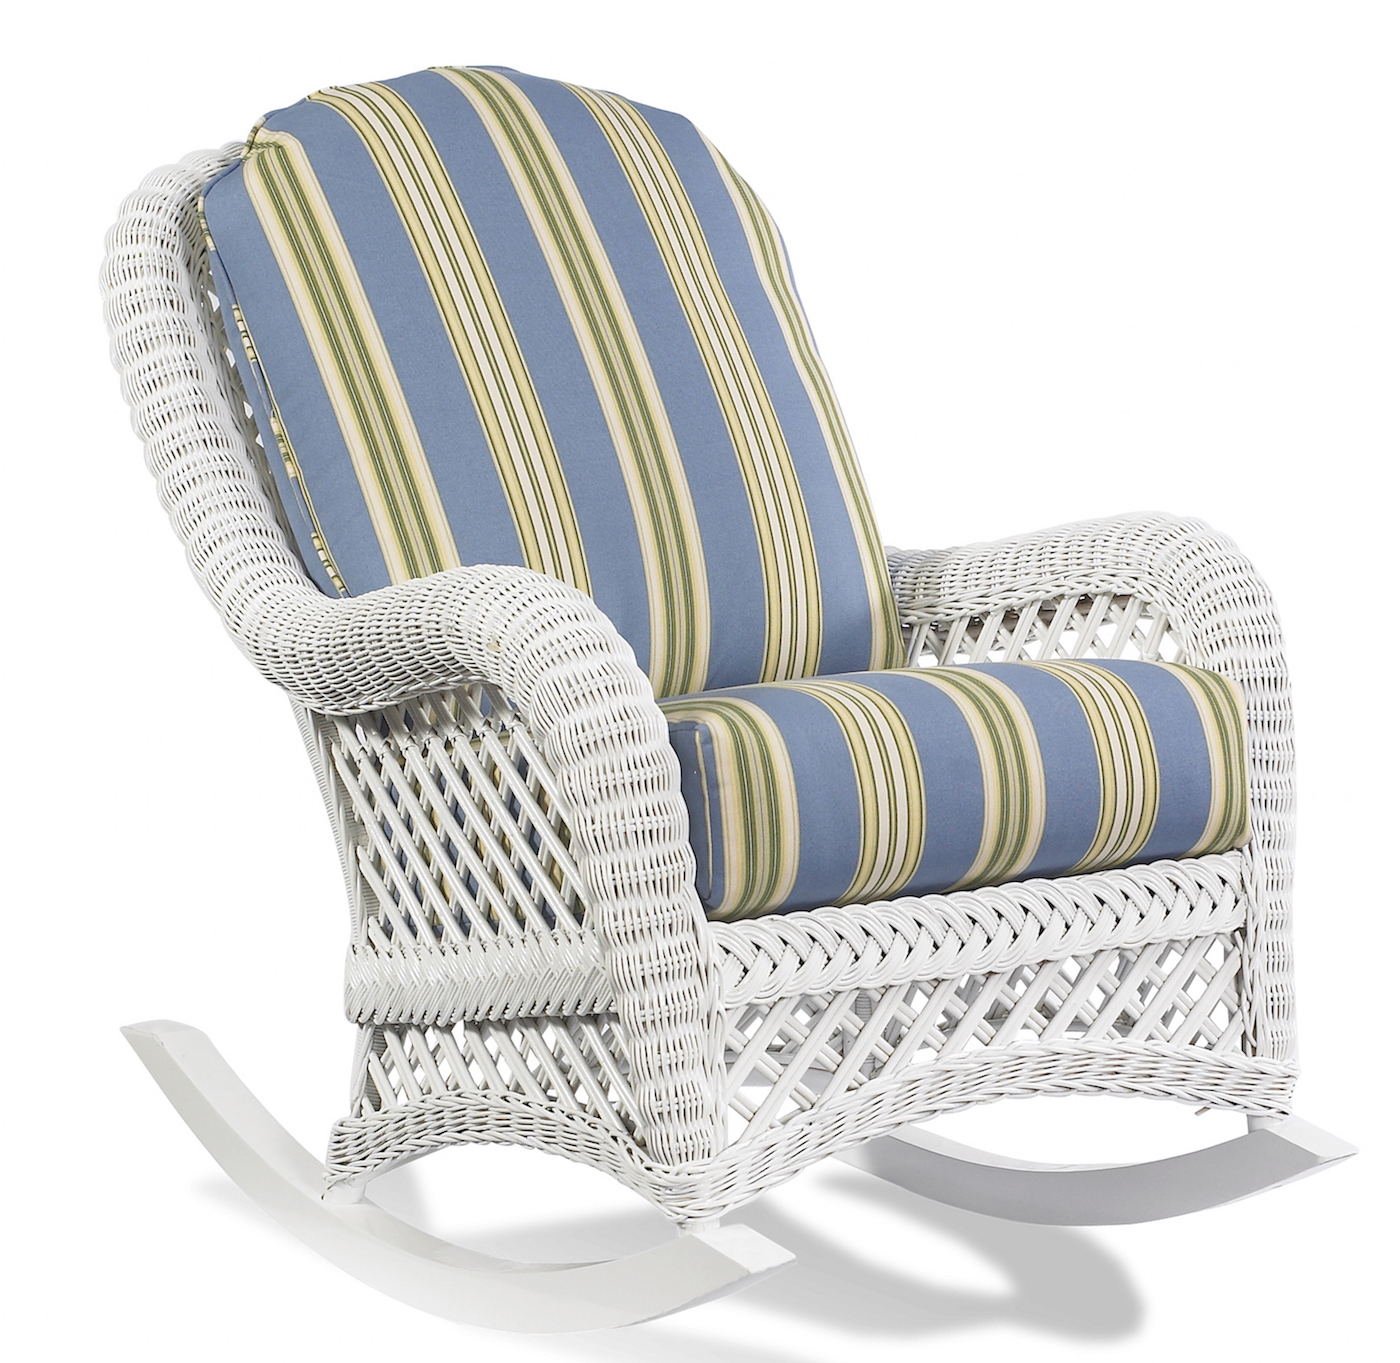 outside designing ideas simple about rocking in home with gallery spectacular remodel lovely attractive wicker chair